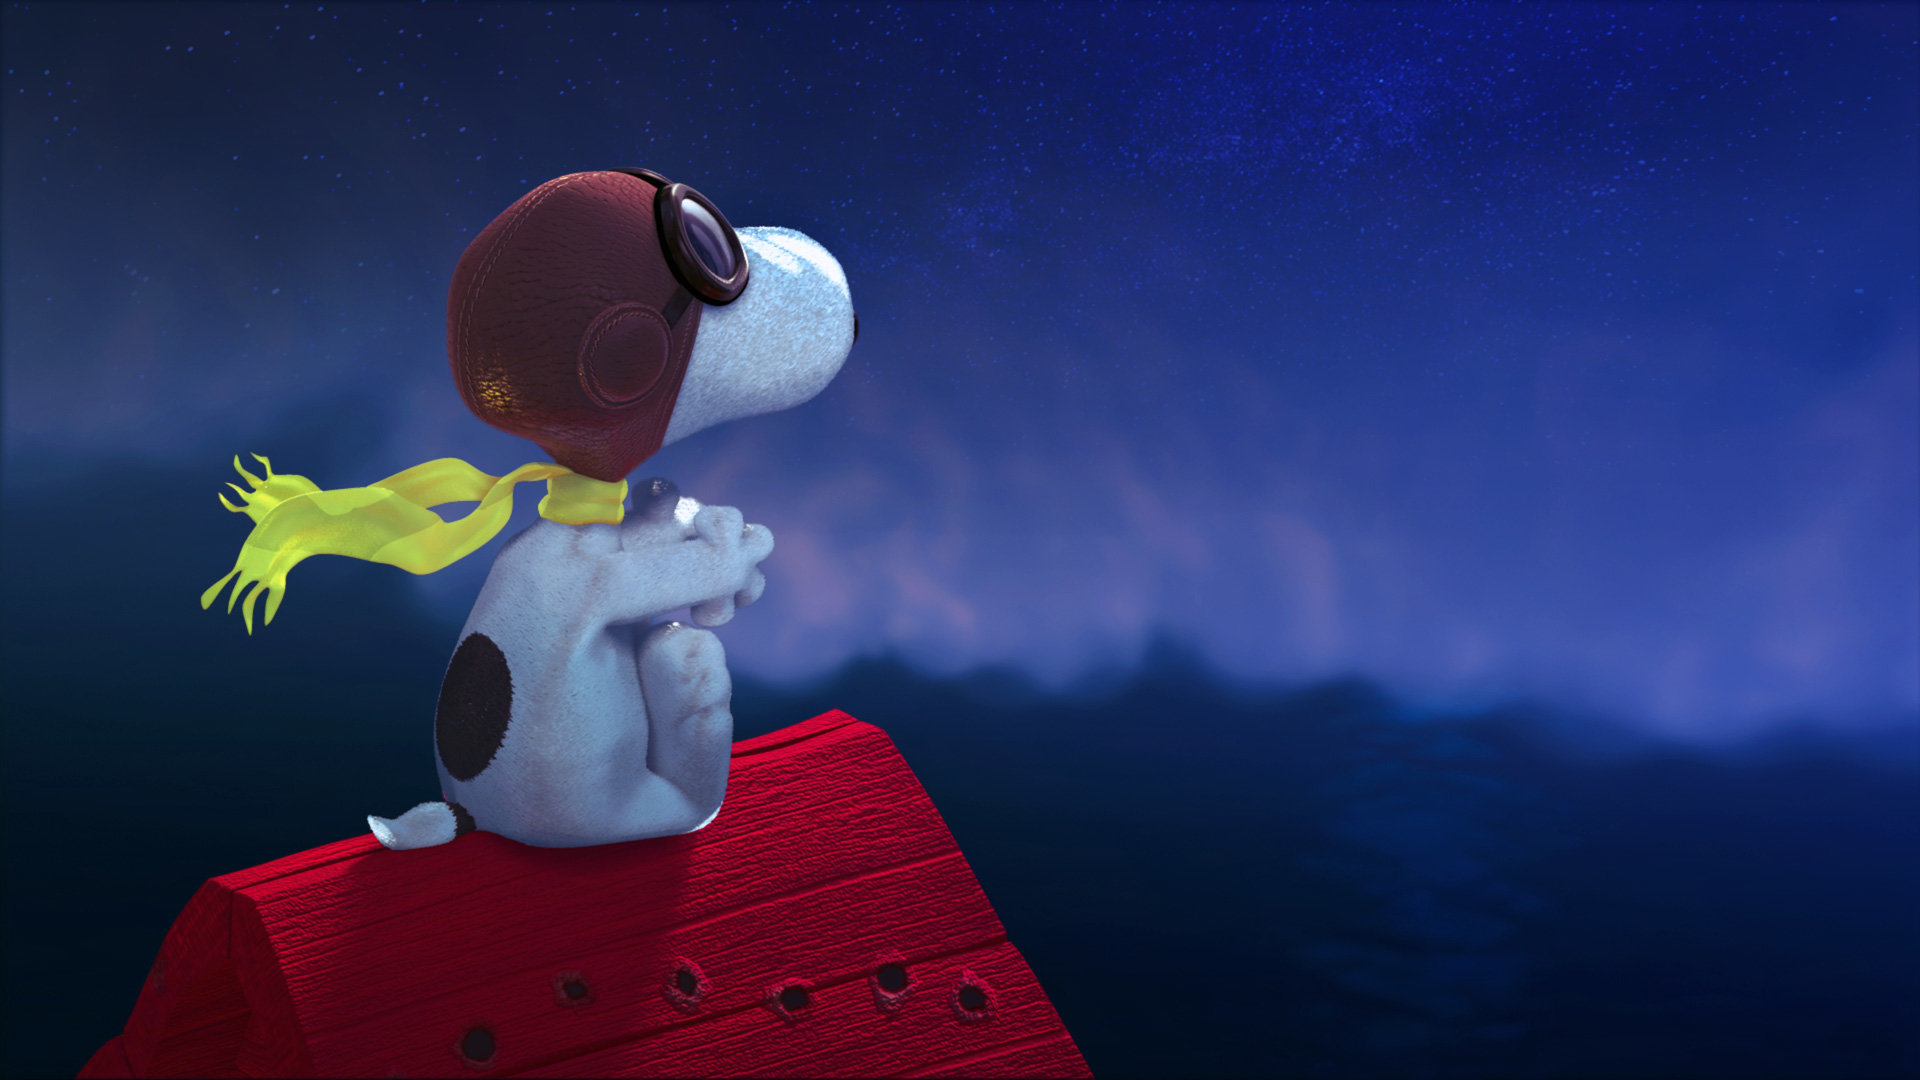 snoopy_nighttime.jpg